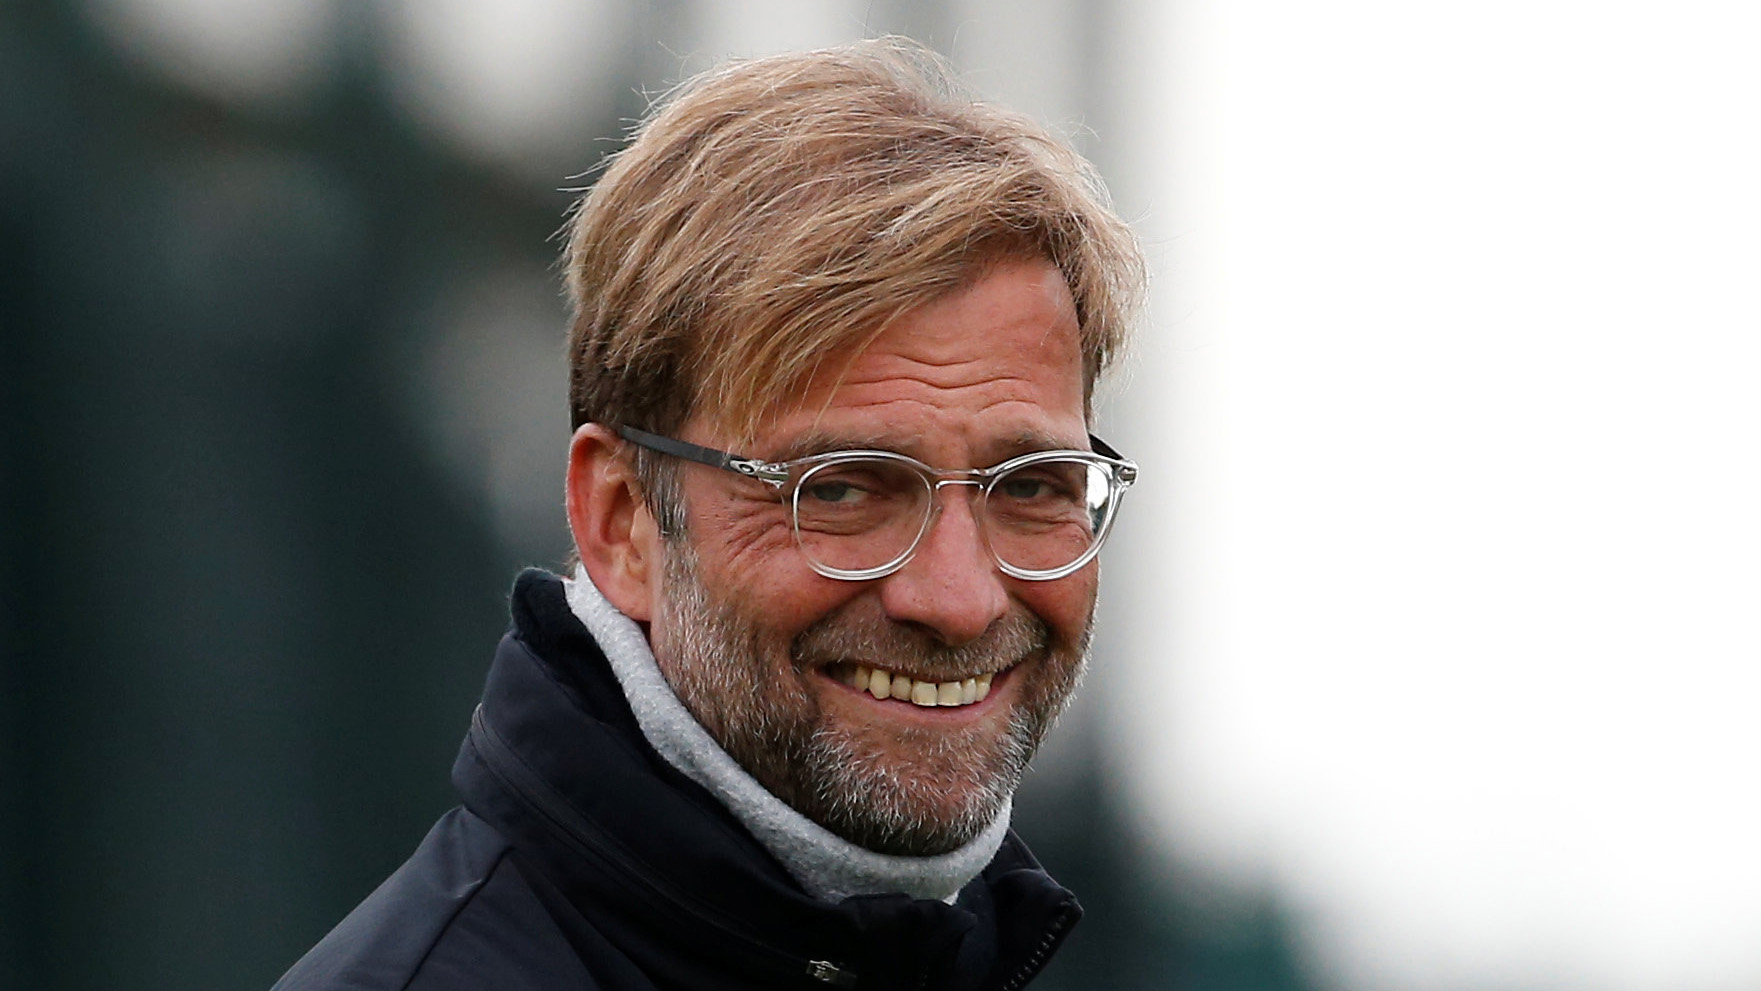 It should be a stress-free night for Jurgen Klopp